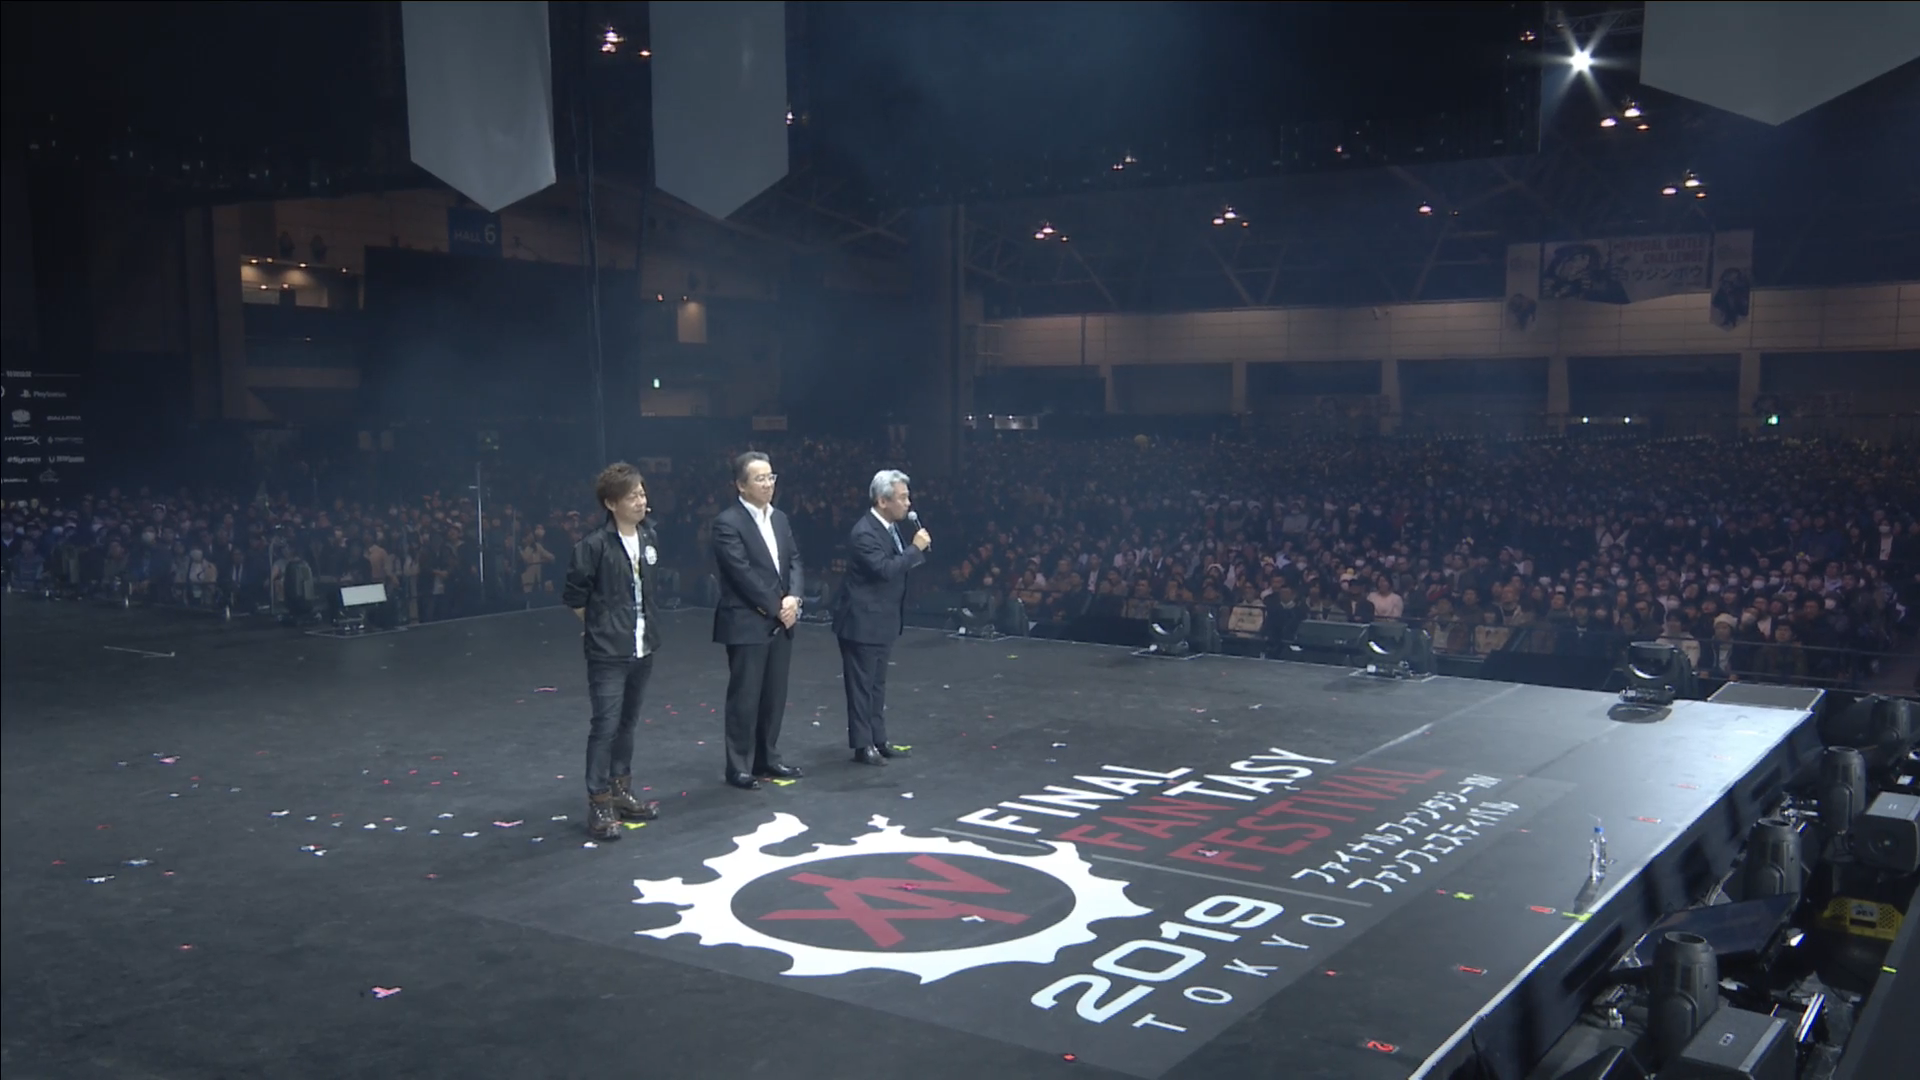 """That's the three most important people at Square-Enix on that stage right now."" Yosuka Matsuda and Shinji Hashimoto address the crowd following the keynote."